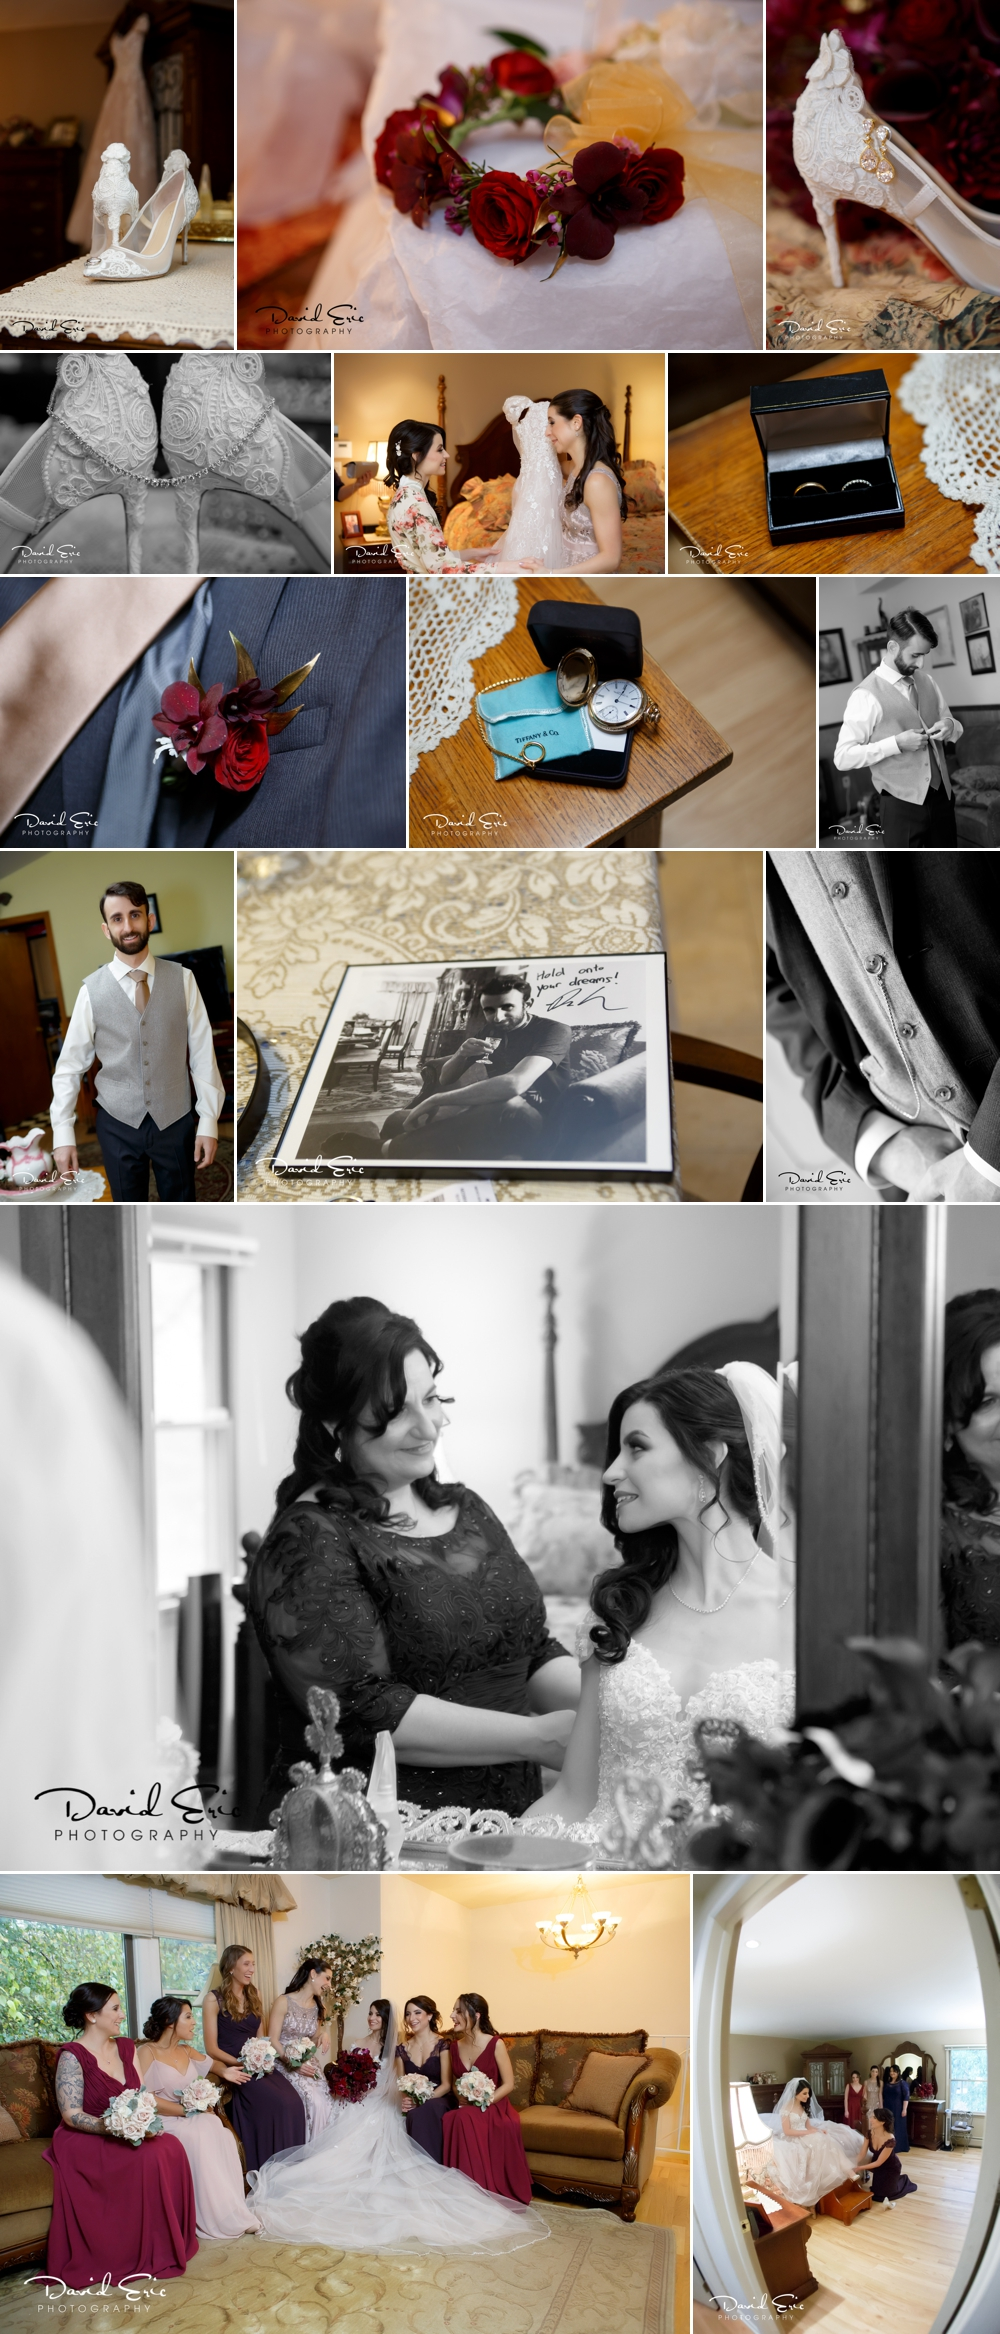 Every detail of the wedding is important. Documenting the details is just as important! Beautiful dress, incredible tux.